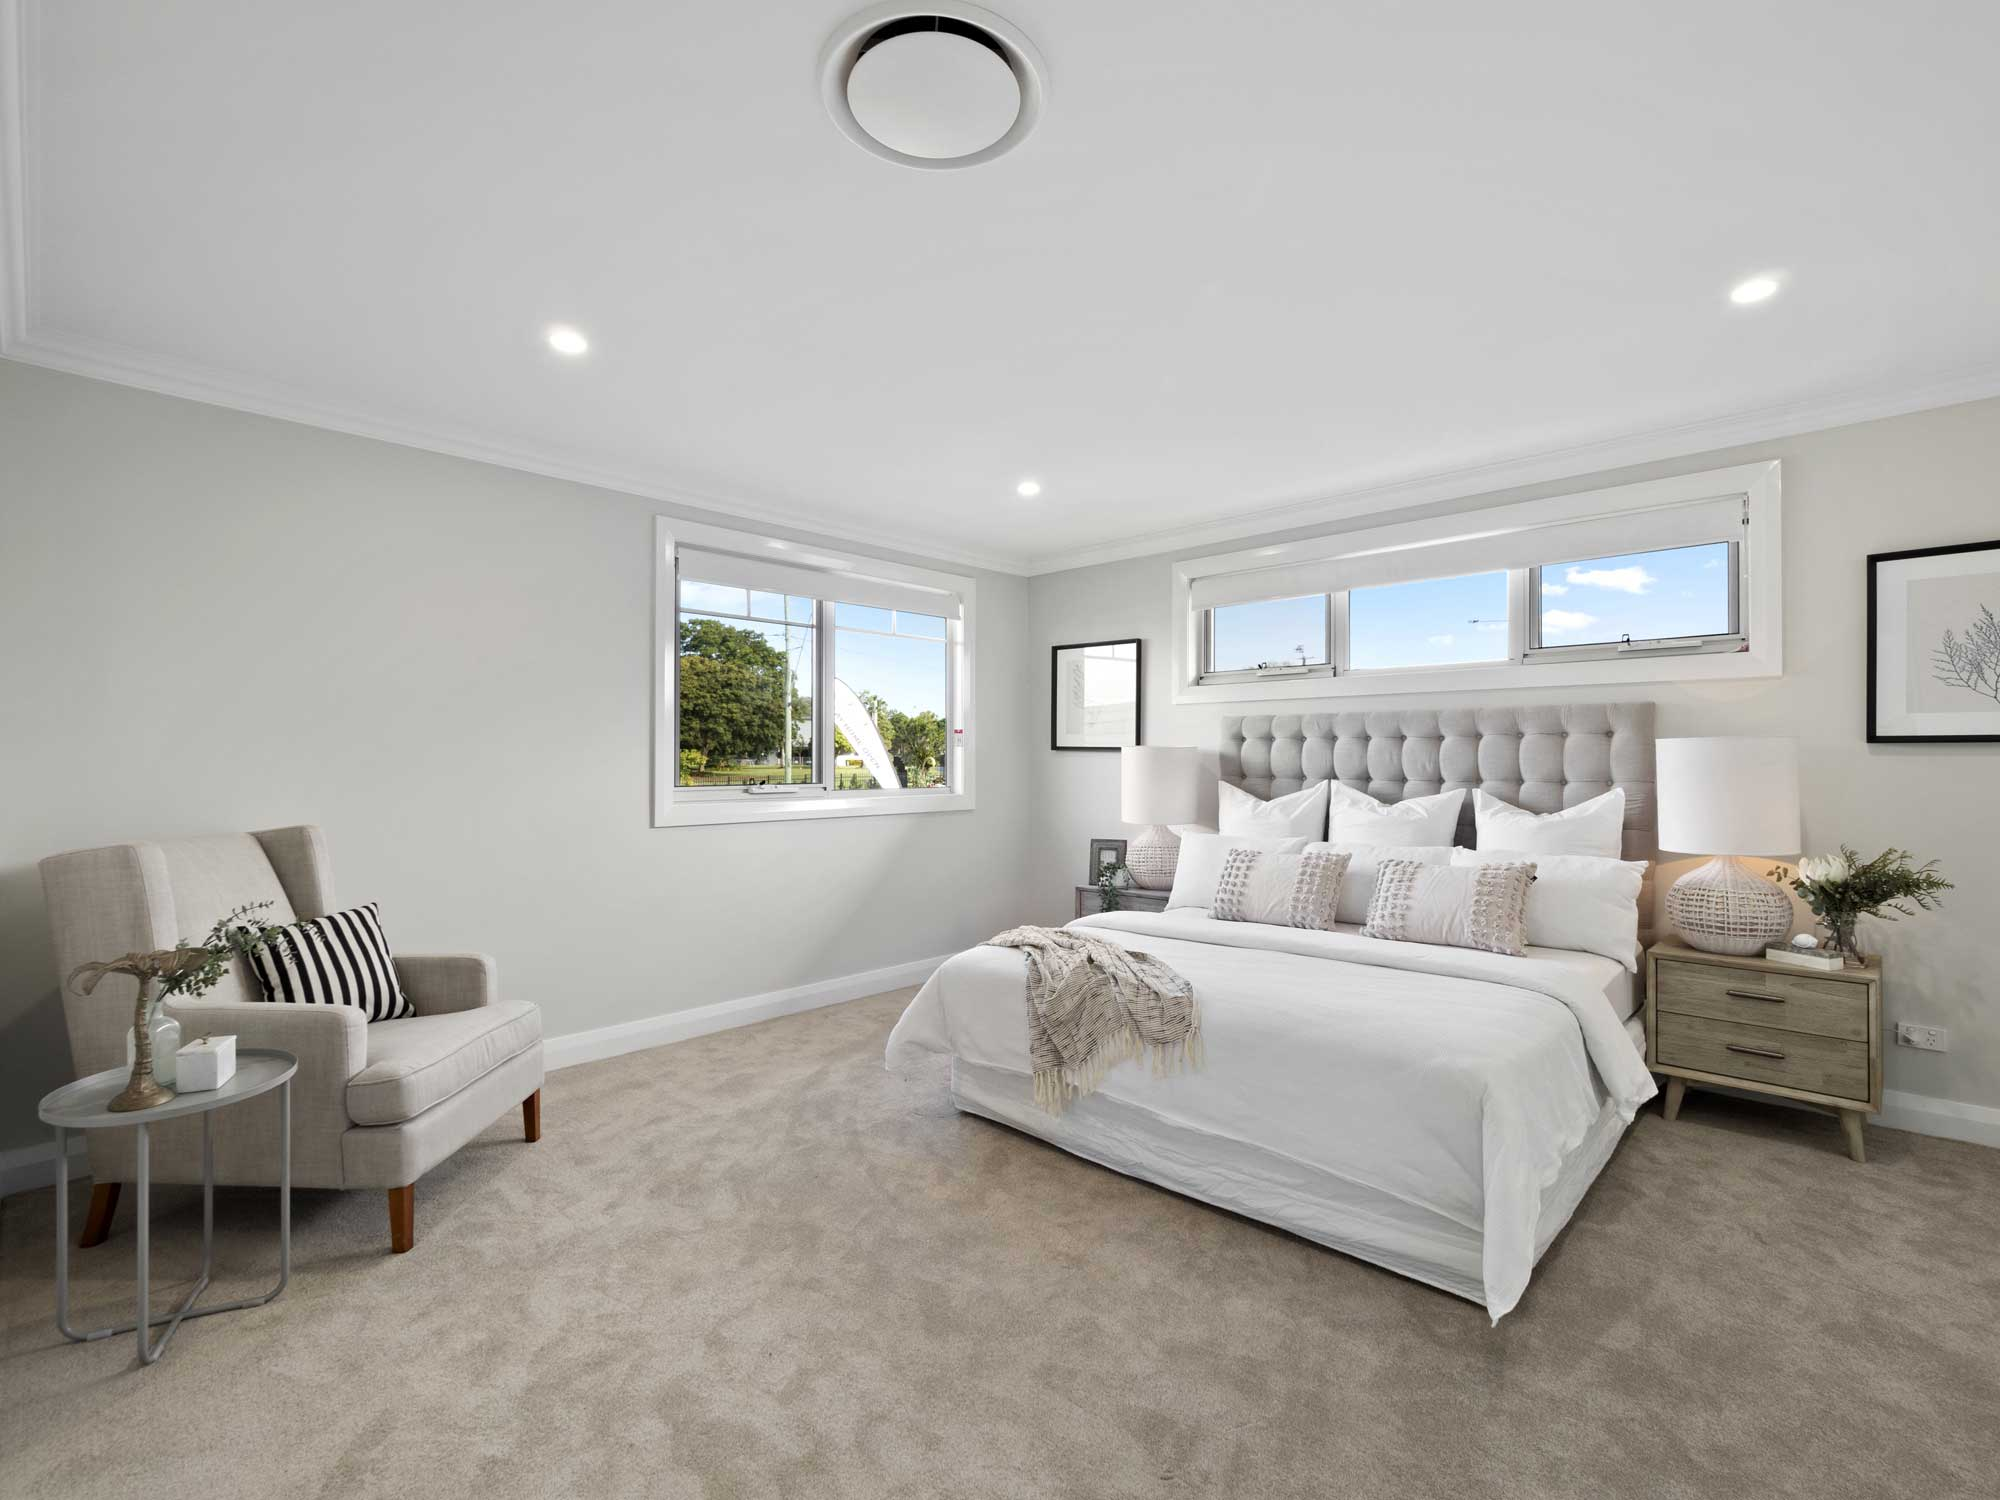 Alphaline Homes display home at lot 62 Superior Parade Bridgeman Downs